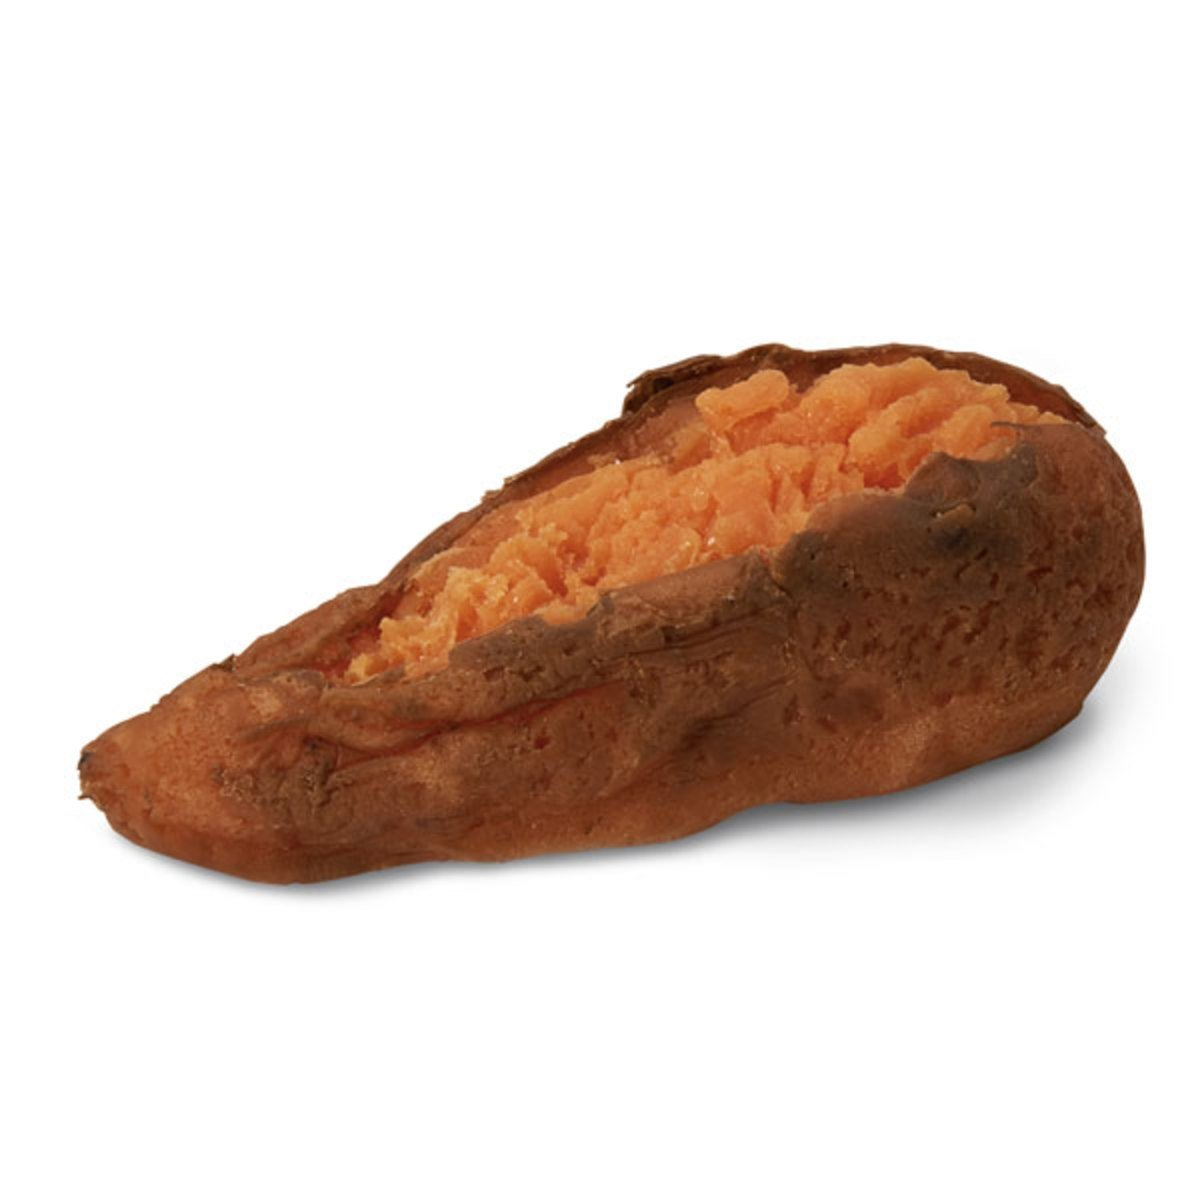 Nasco Life Form Sweet Potato Food Replica